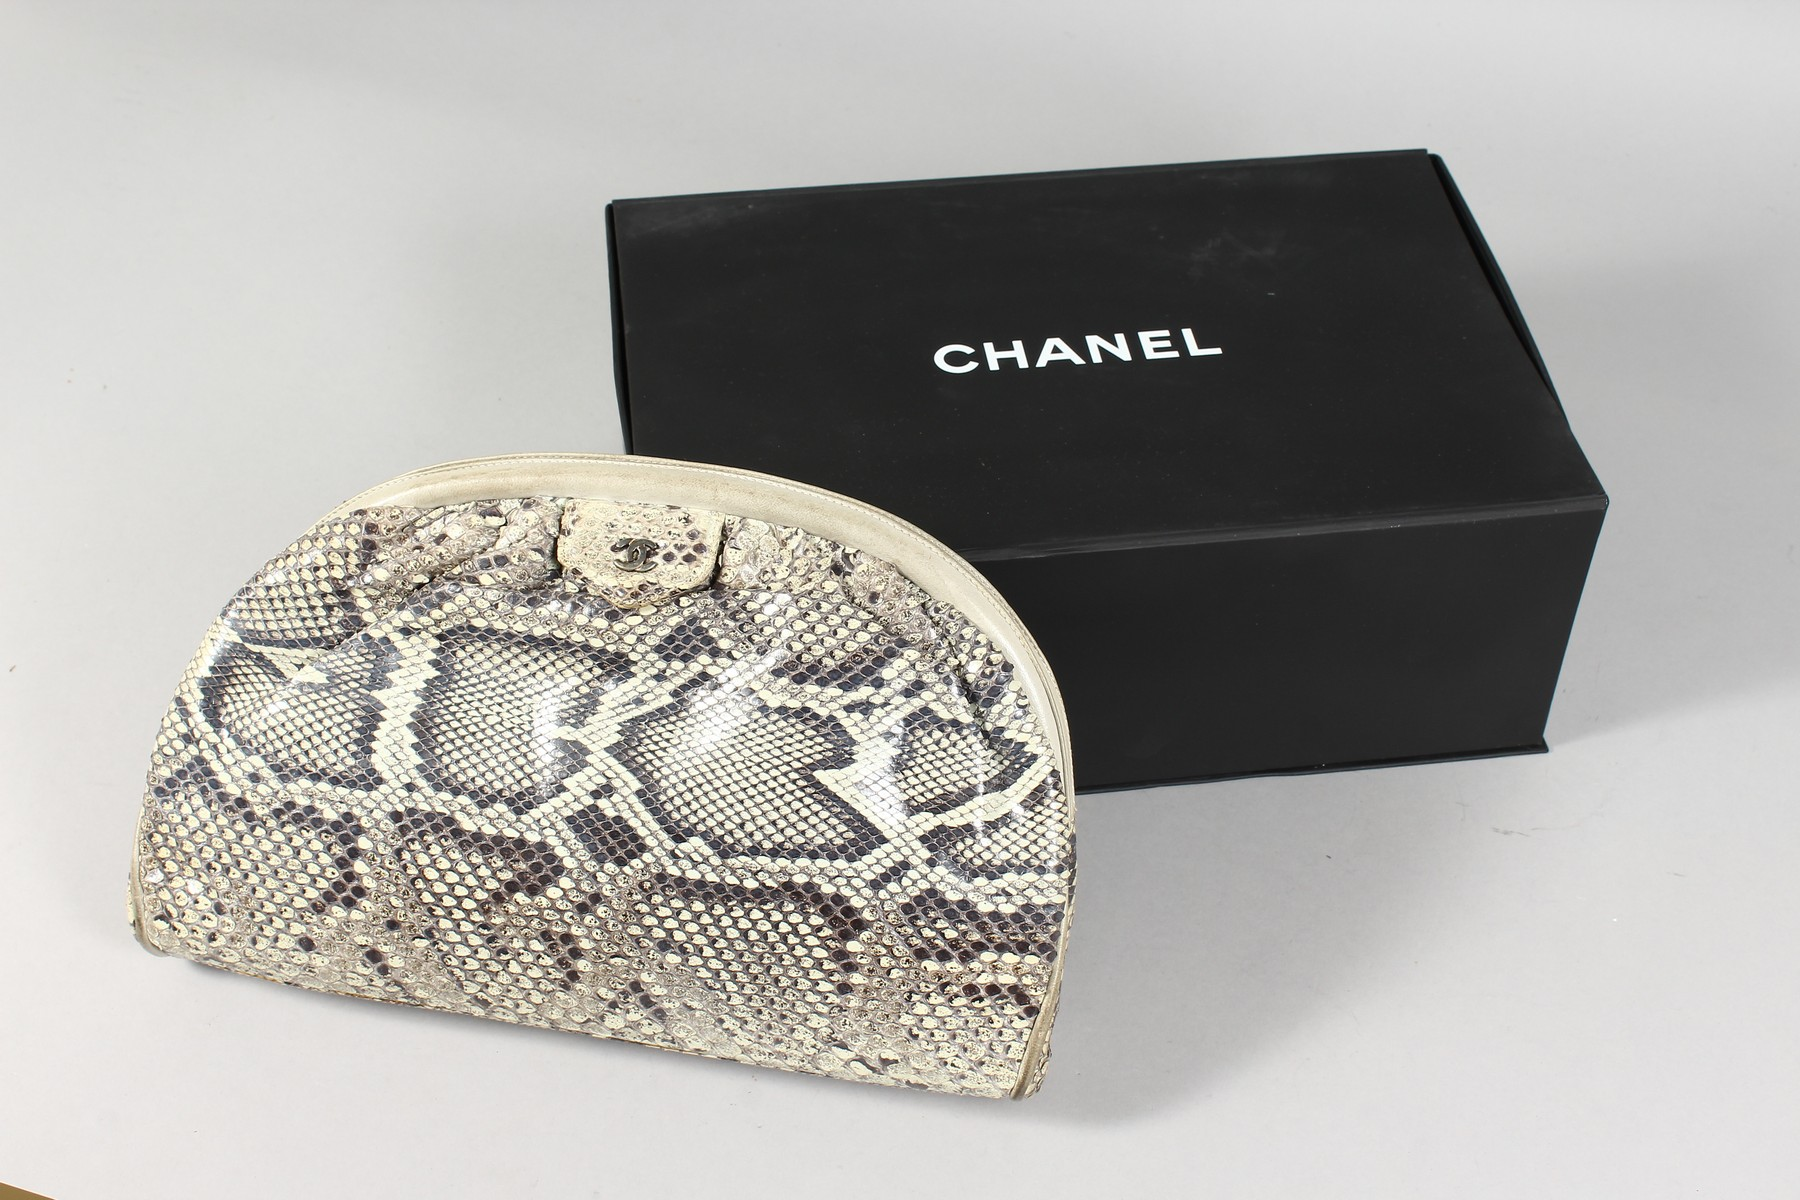 A CHANEL SNAKESKIN BAG with leather interior. Made in Italy. 11ins long. - Image 6 of 9